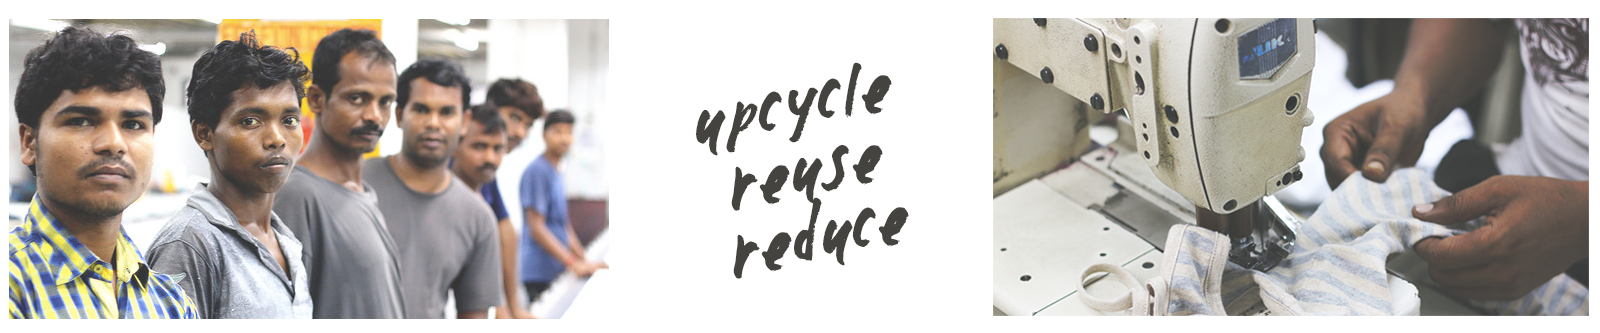 upcycle sustainable fashion